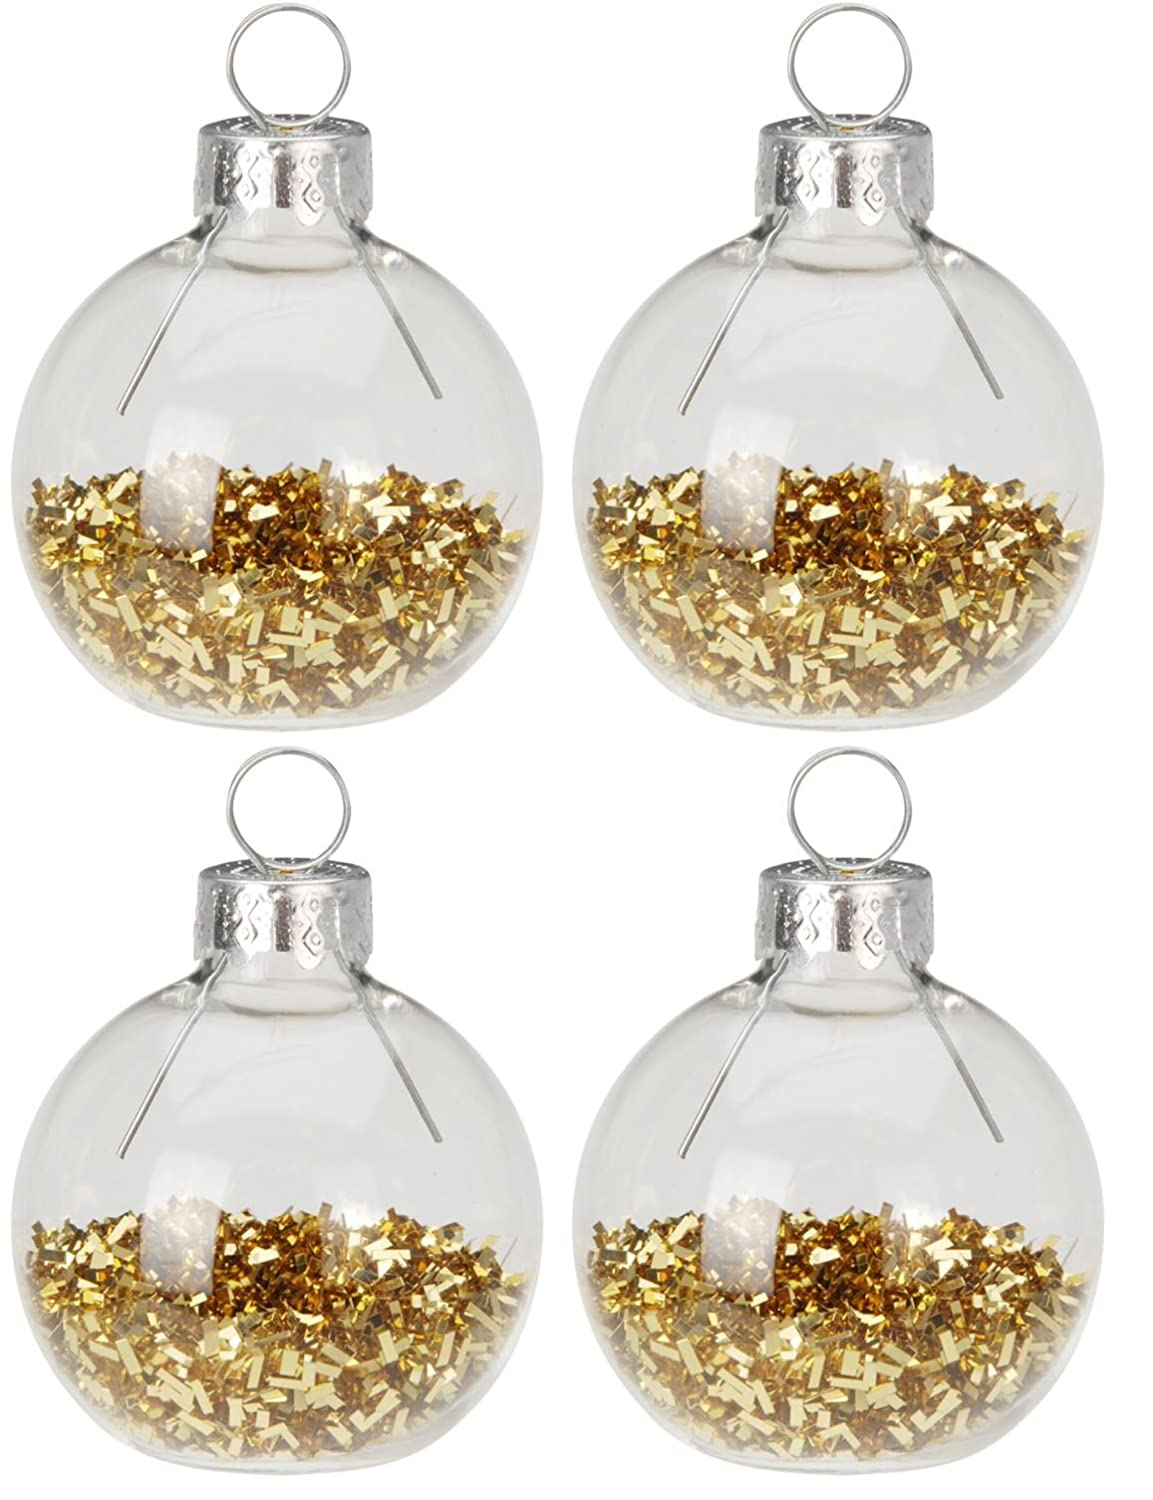 19.5 x 12.6 x 4.3 cm Talking Tables Party Porcelain Gold Glass Bauble Table Place Card Holders-Pack of 8